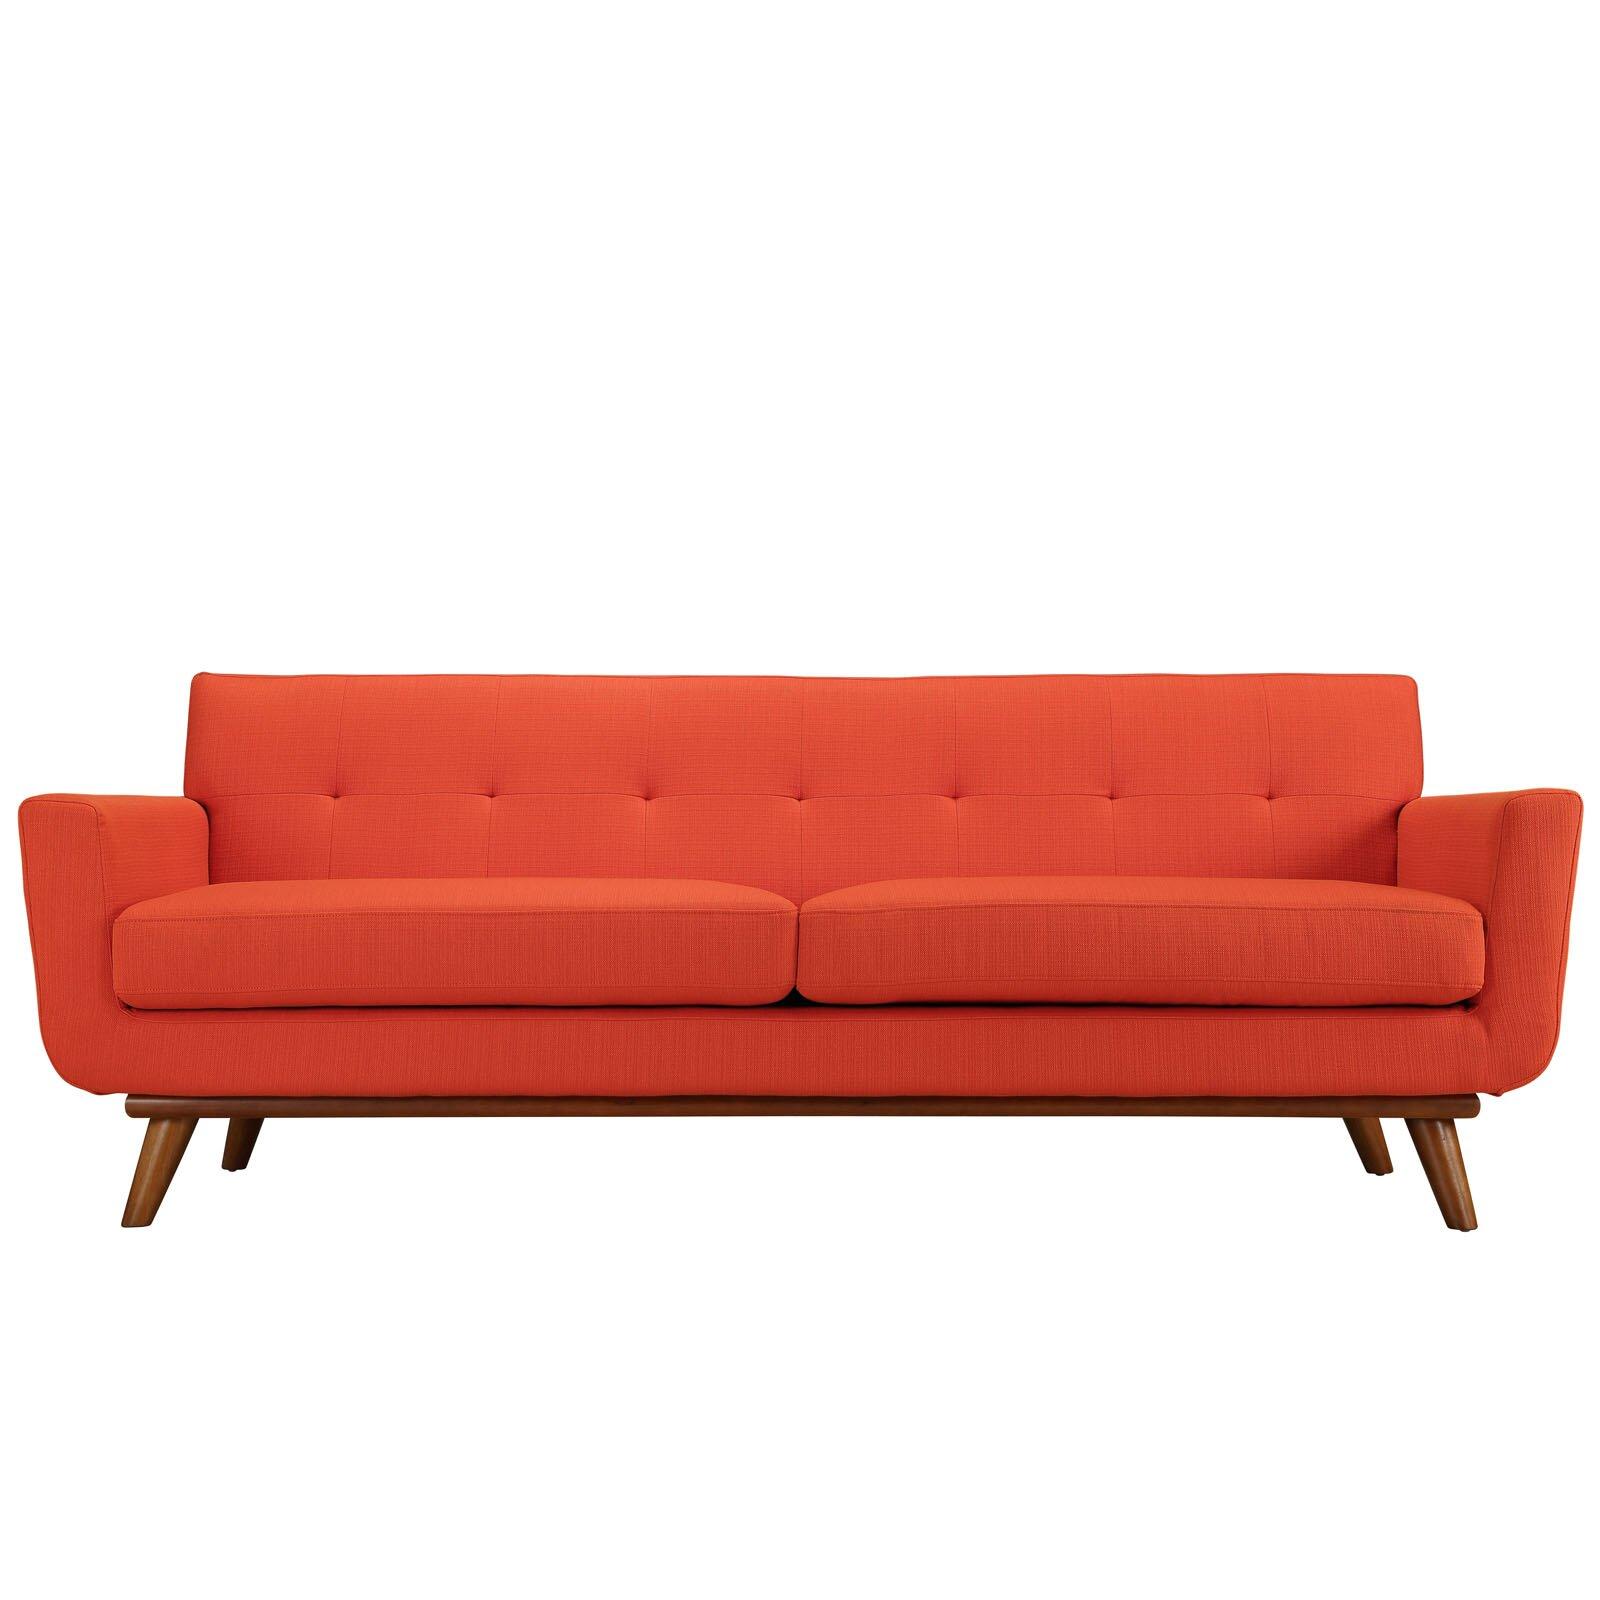 Corrigan studio saginaw upholstered sofa reviews wayfair for Inexpensive modern sofa